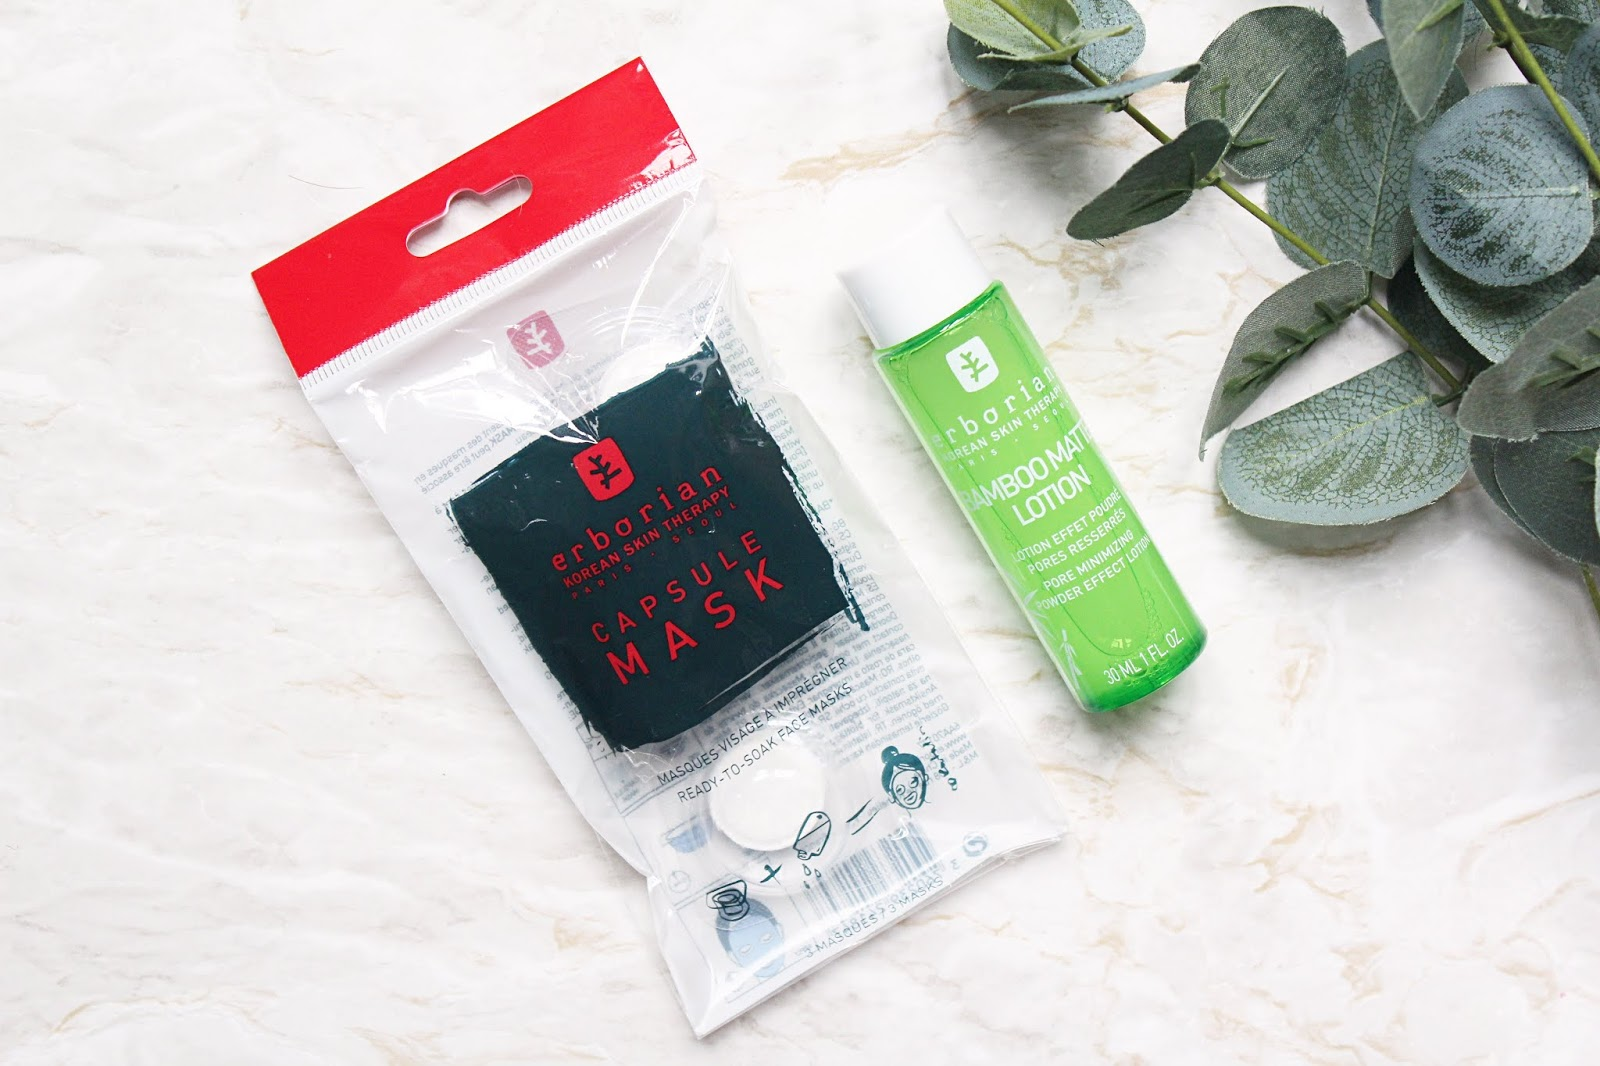 Erborian Capsule Mask & Bamboo Matte Lotion Review